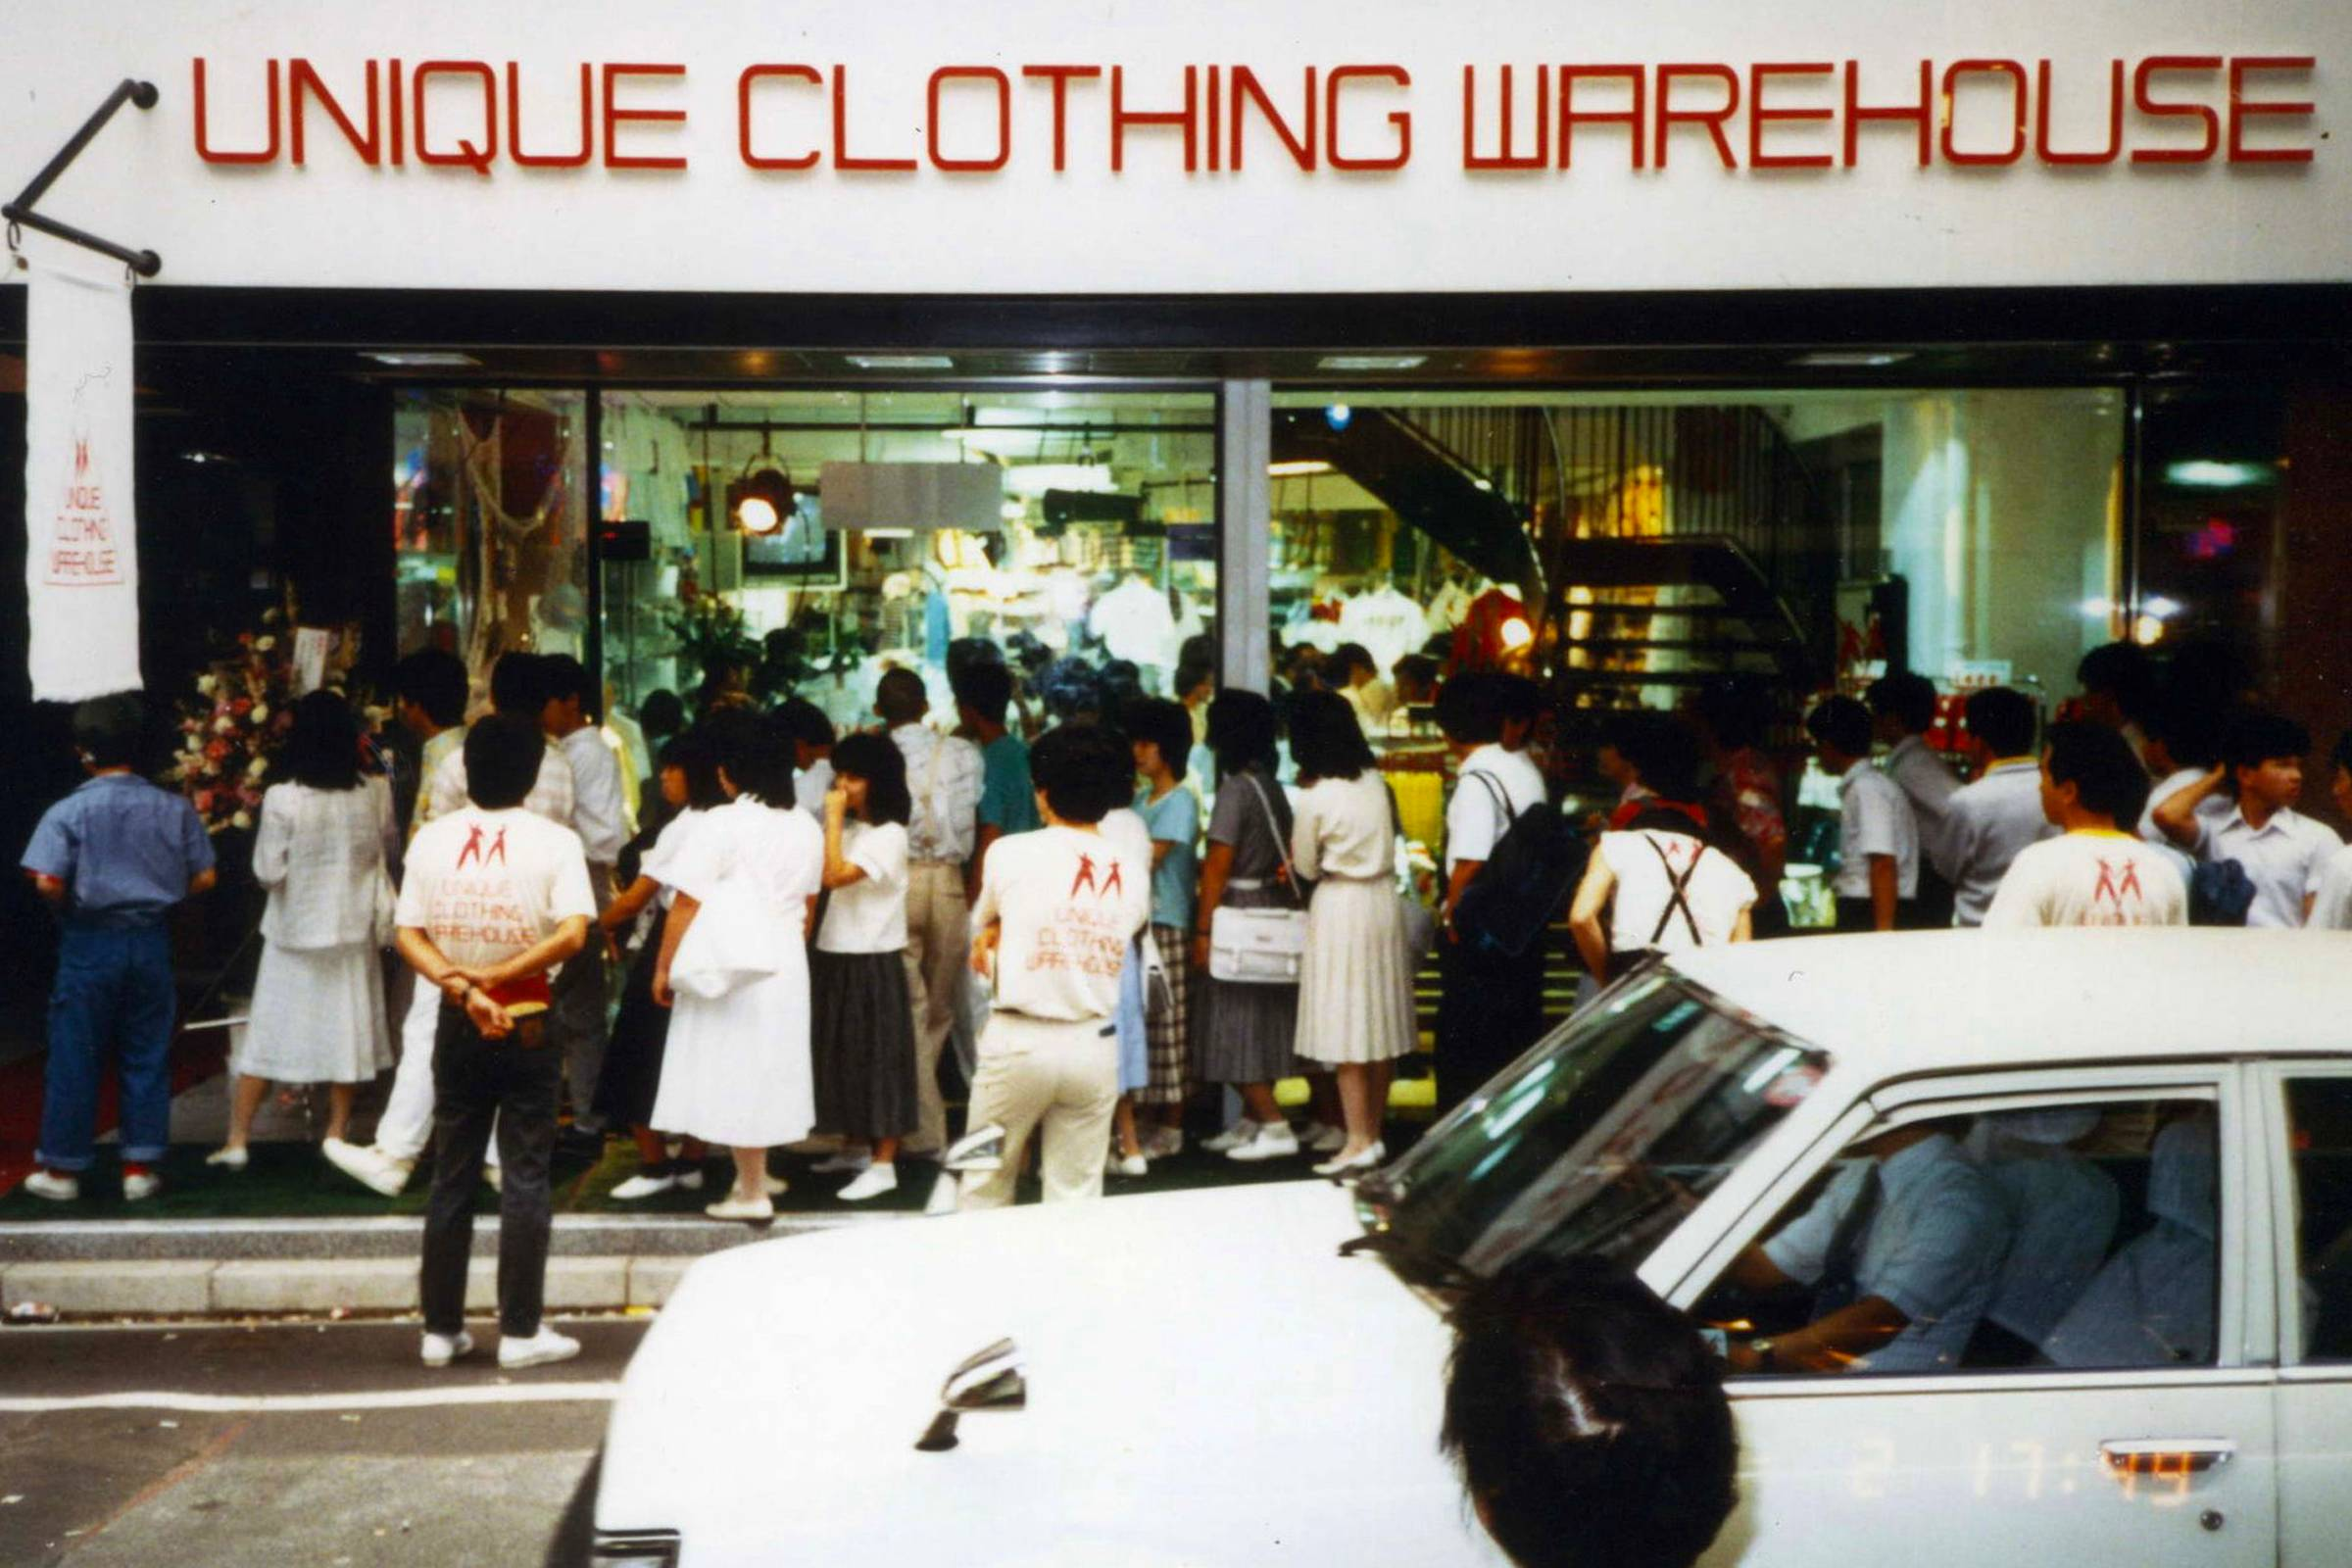 Uniqlo's first store, the Fukuromachi store in Hiroshima. The store opened in 1984, but closed by August 1991.